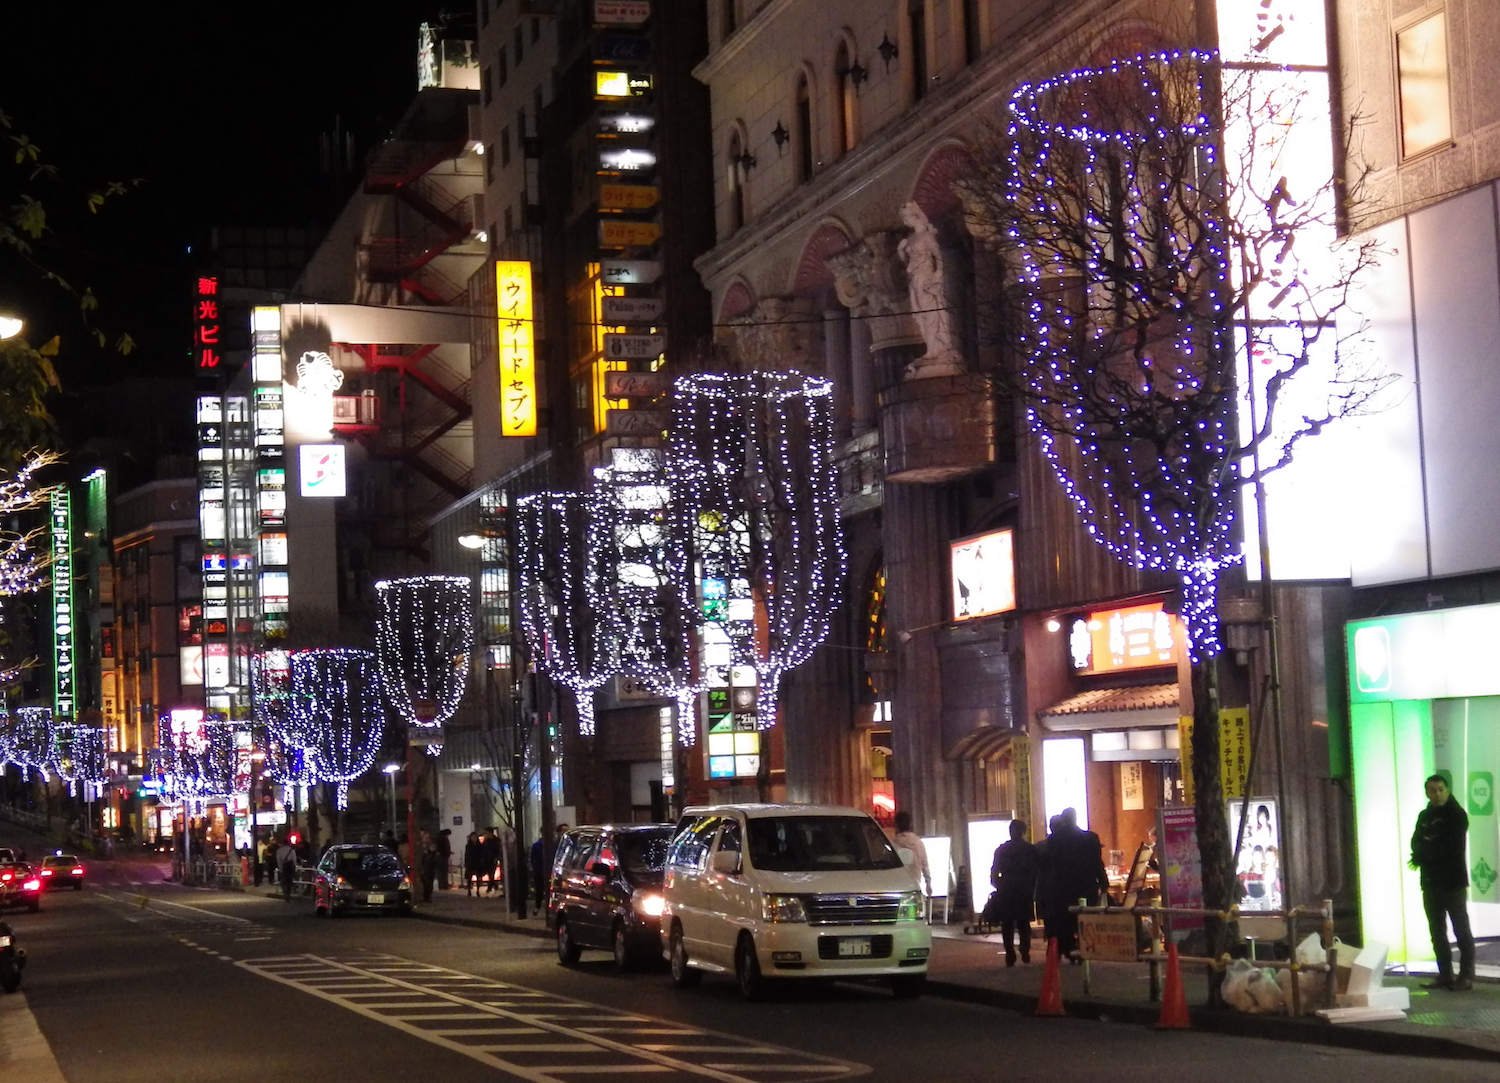 Trees illuminated like champagne glasses on Kuyakusho Dori. Golden Gai is around the corner from the Kuyakusho-mae Capsule Hotel.